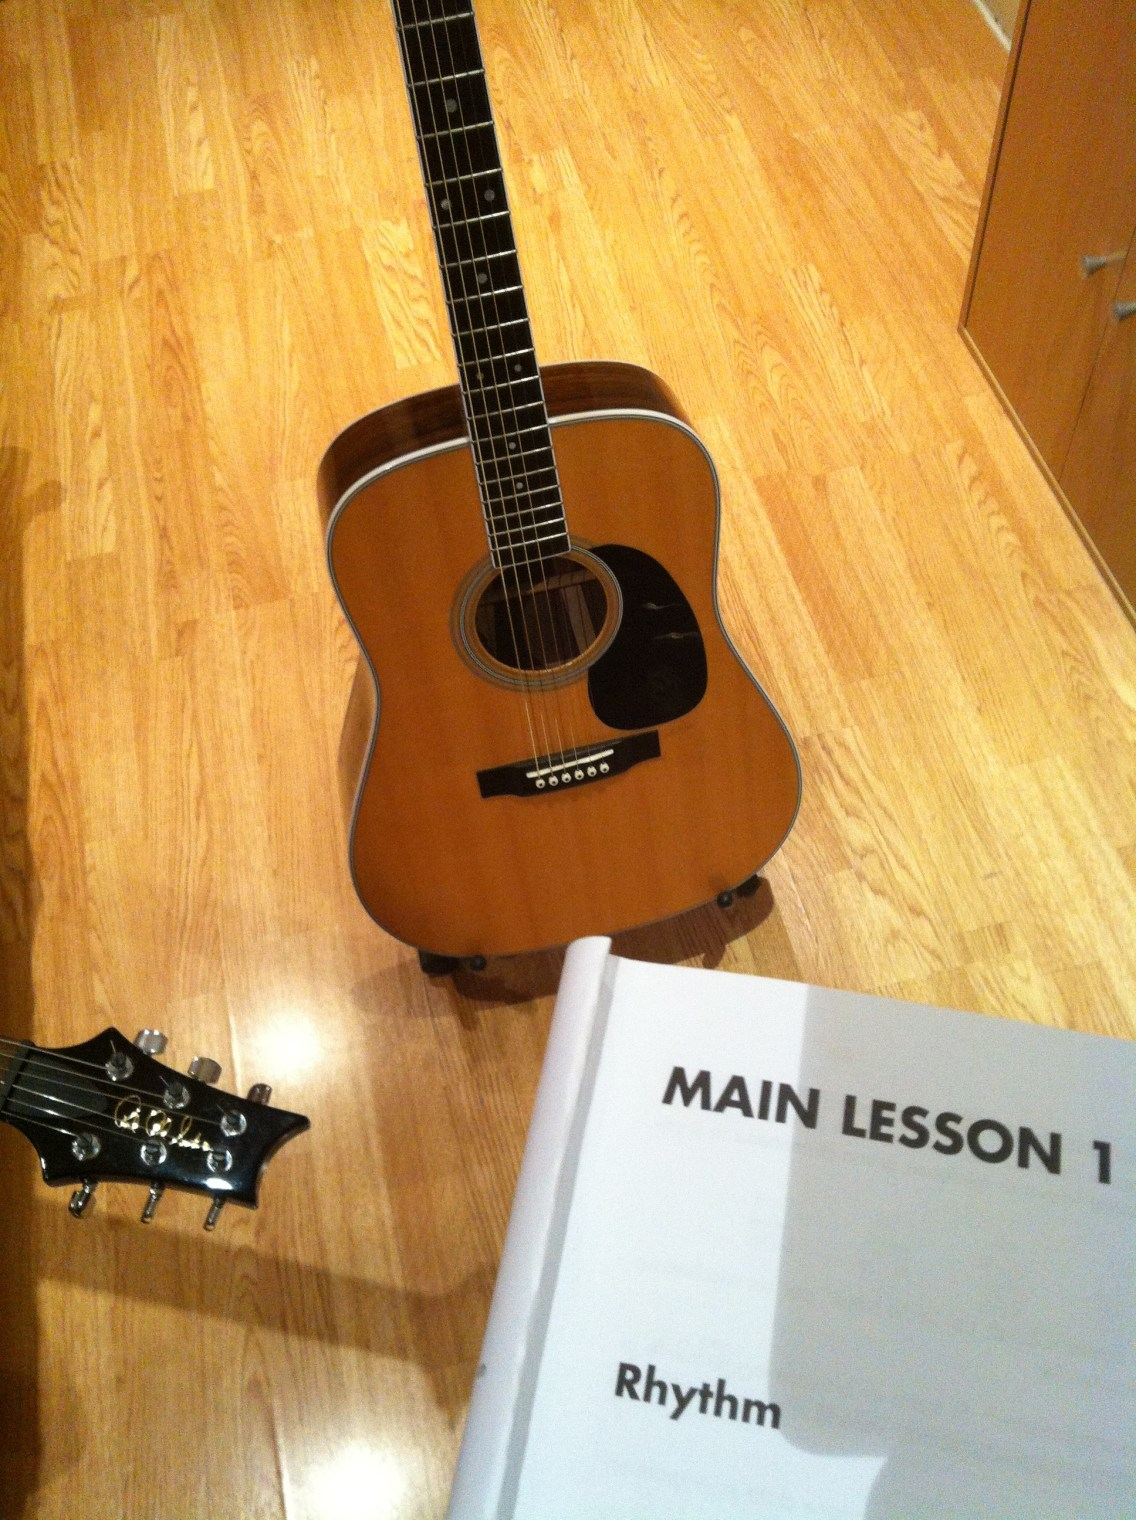 Acoustic Guitar Lesson in London With Marco Cirillo. Beginners - Advanced Guitar Lesson. Acoustic Guitar Lesson in London - Kilburn - Cricklewood - Willesden Green - Maida Vale with Marco Cirillo Guitar Teacher in London